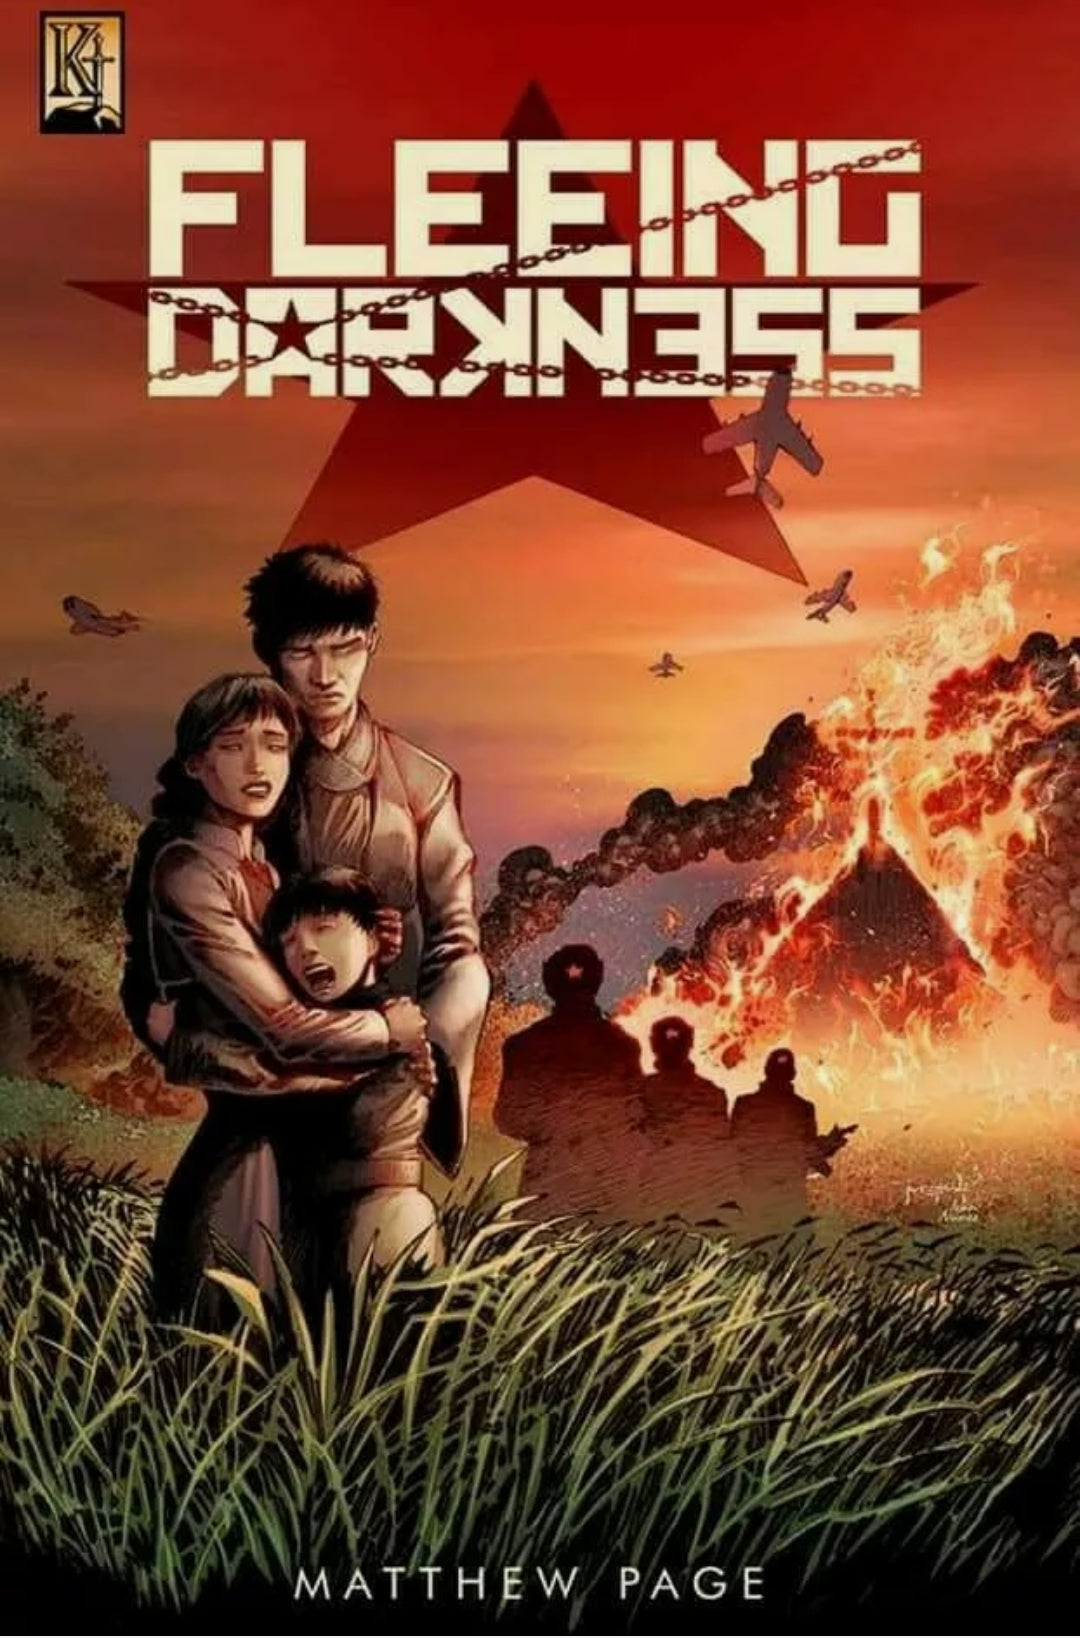 Fleeing Darkness #1 Signed Edition